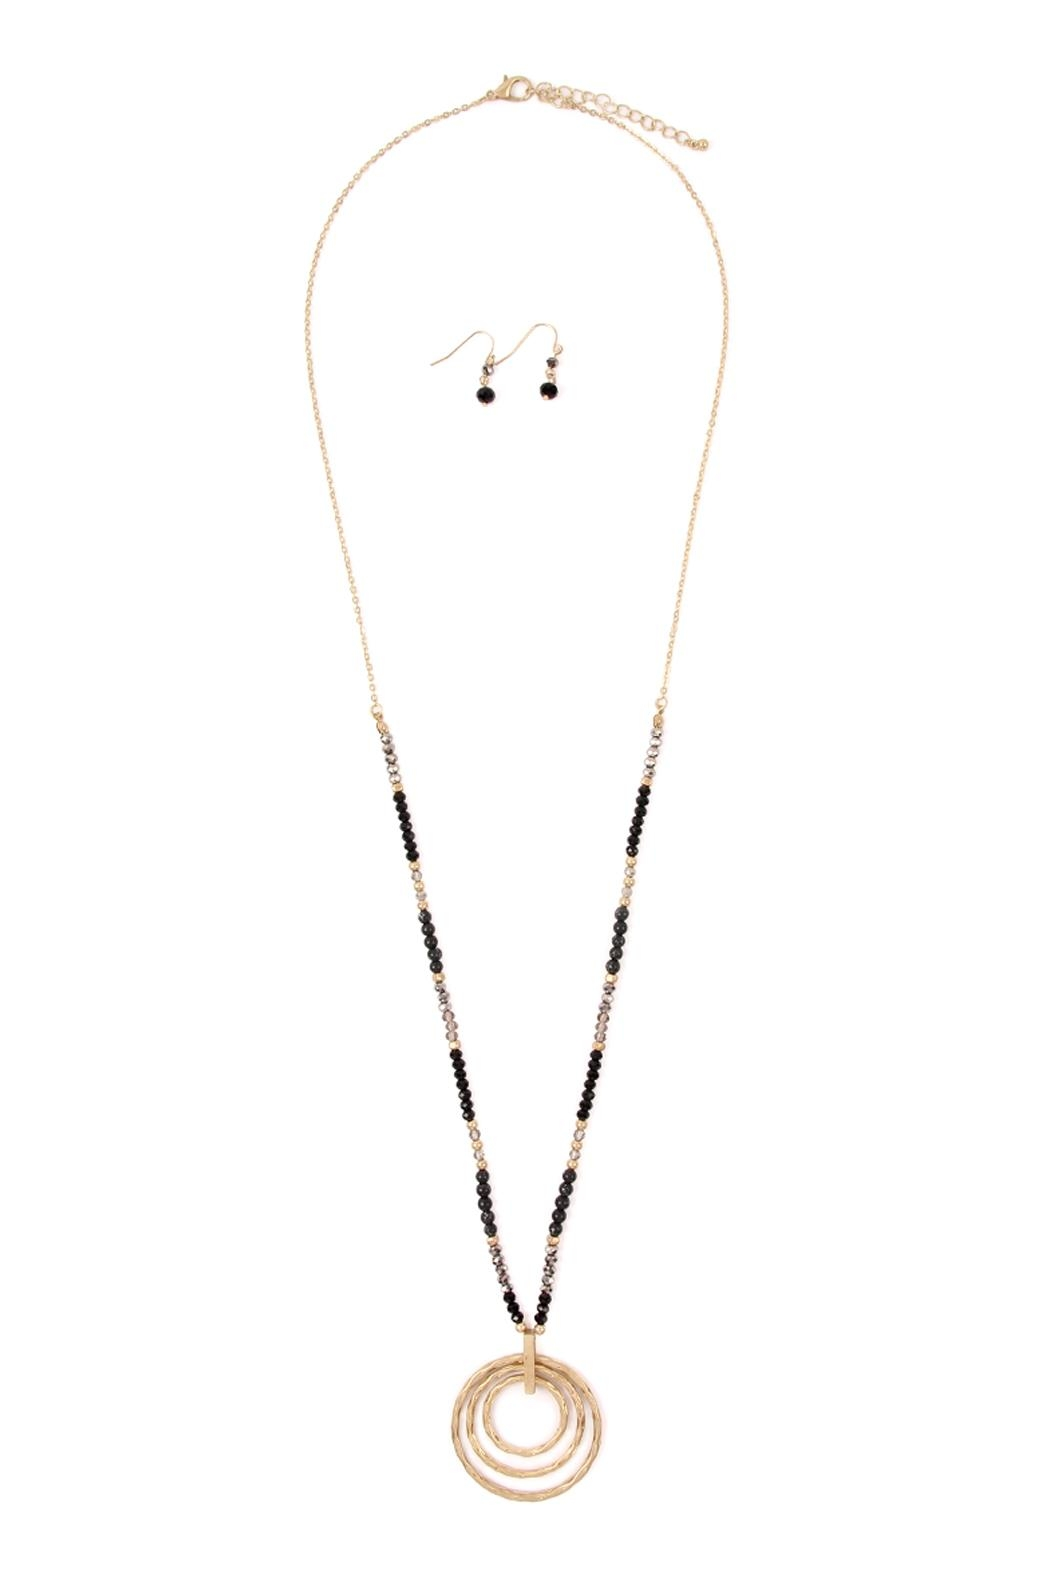 Riah Fashion Rondelle-Beads-Tri-Hoop Pendant-Necklace-And-Earrings-Set - Front Cropped Image